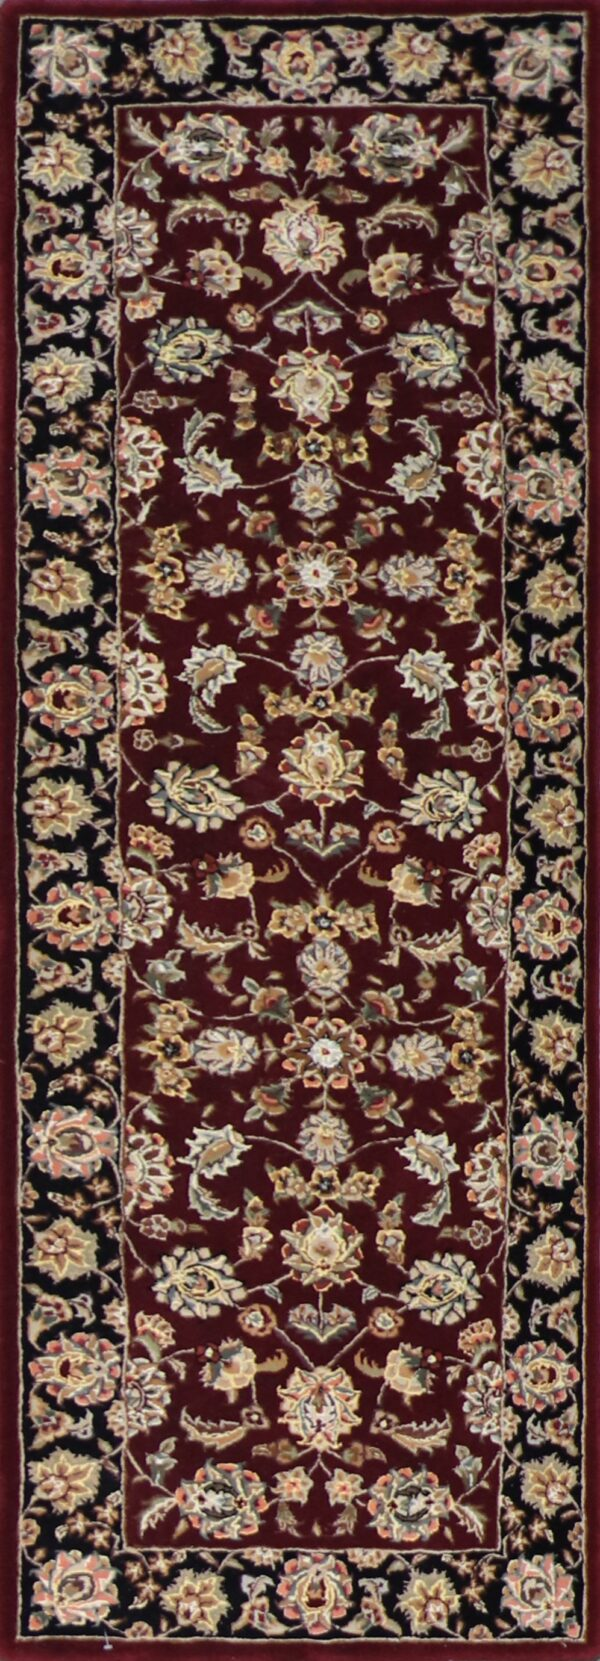 """2'8""""x8'1"""" Decorative Burgundy Wool & Silk Hand-Tufted Rug - Direct Rug Import 